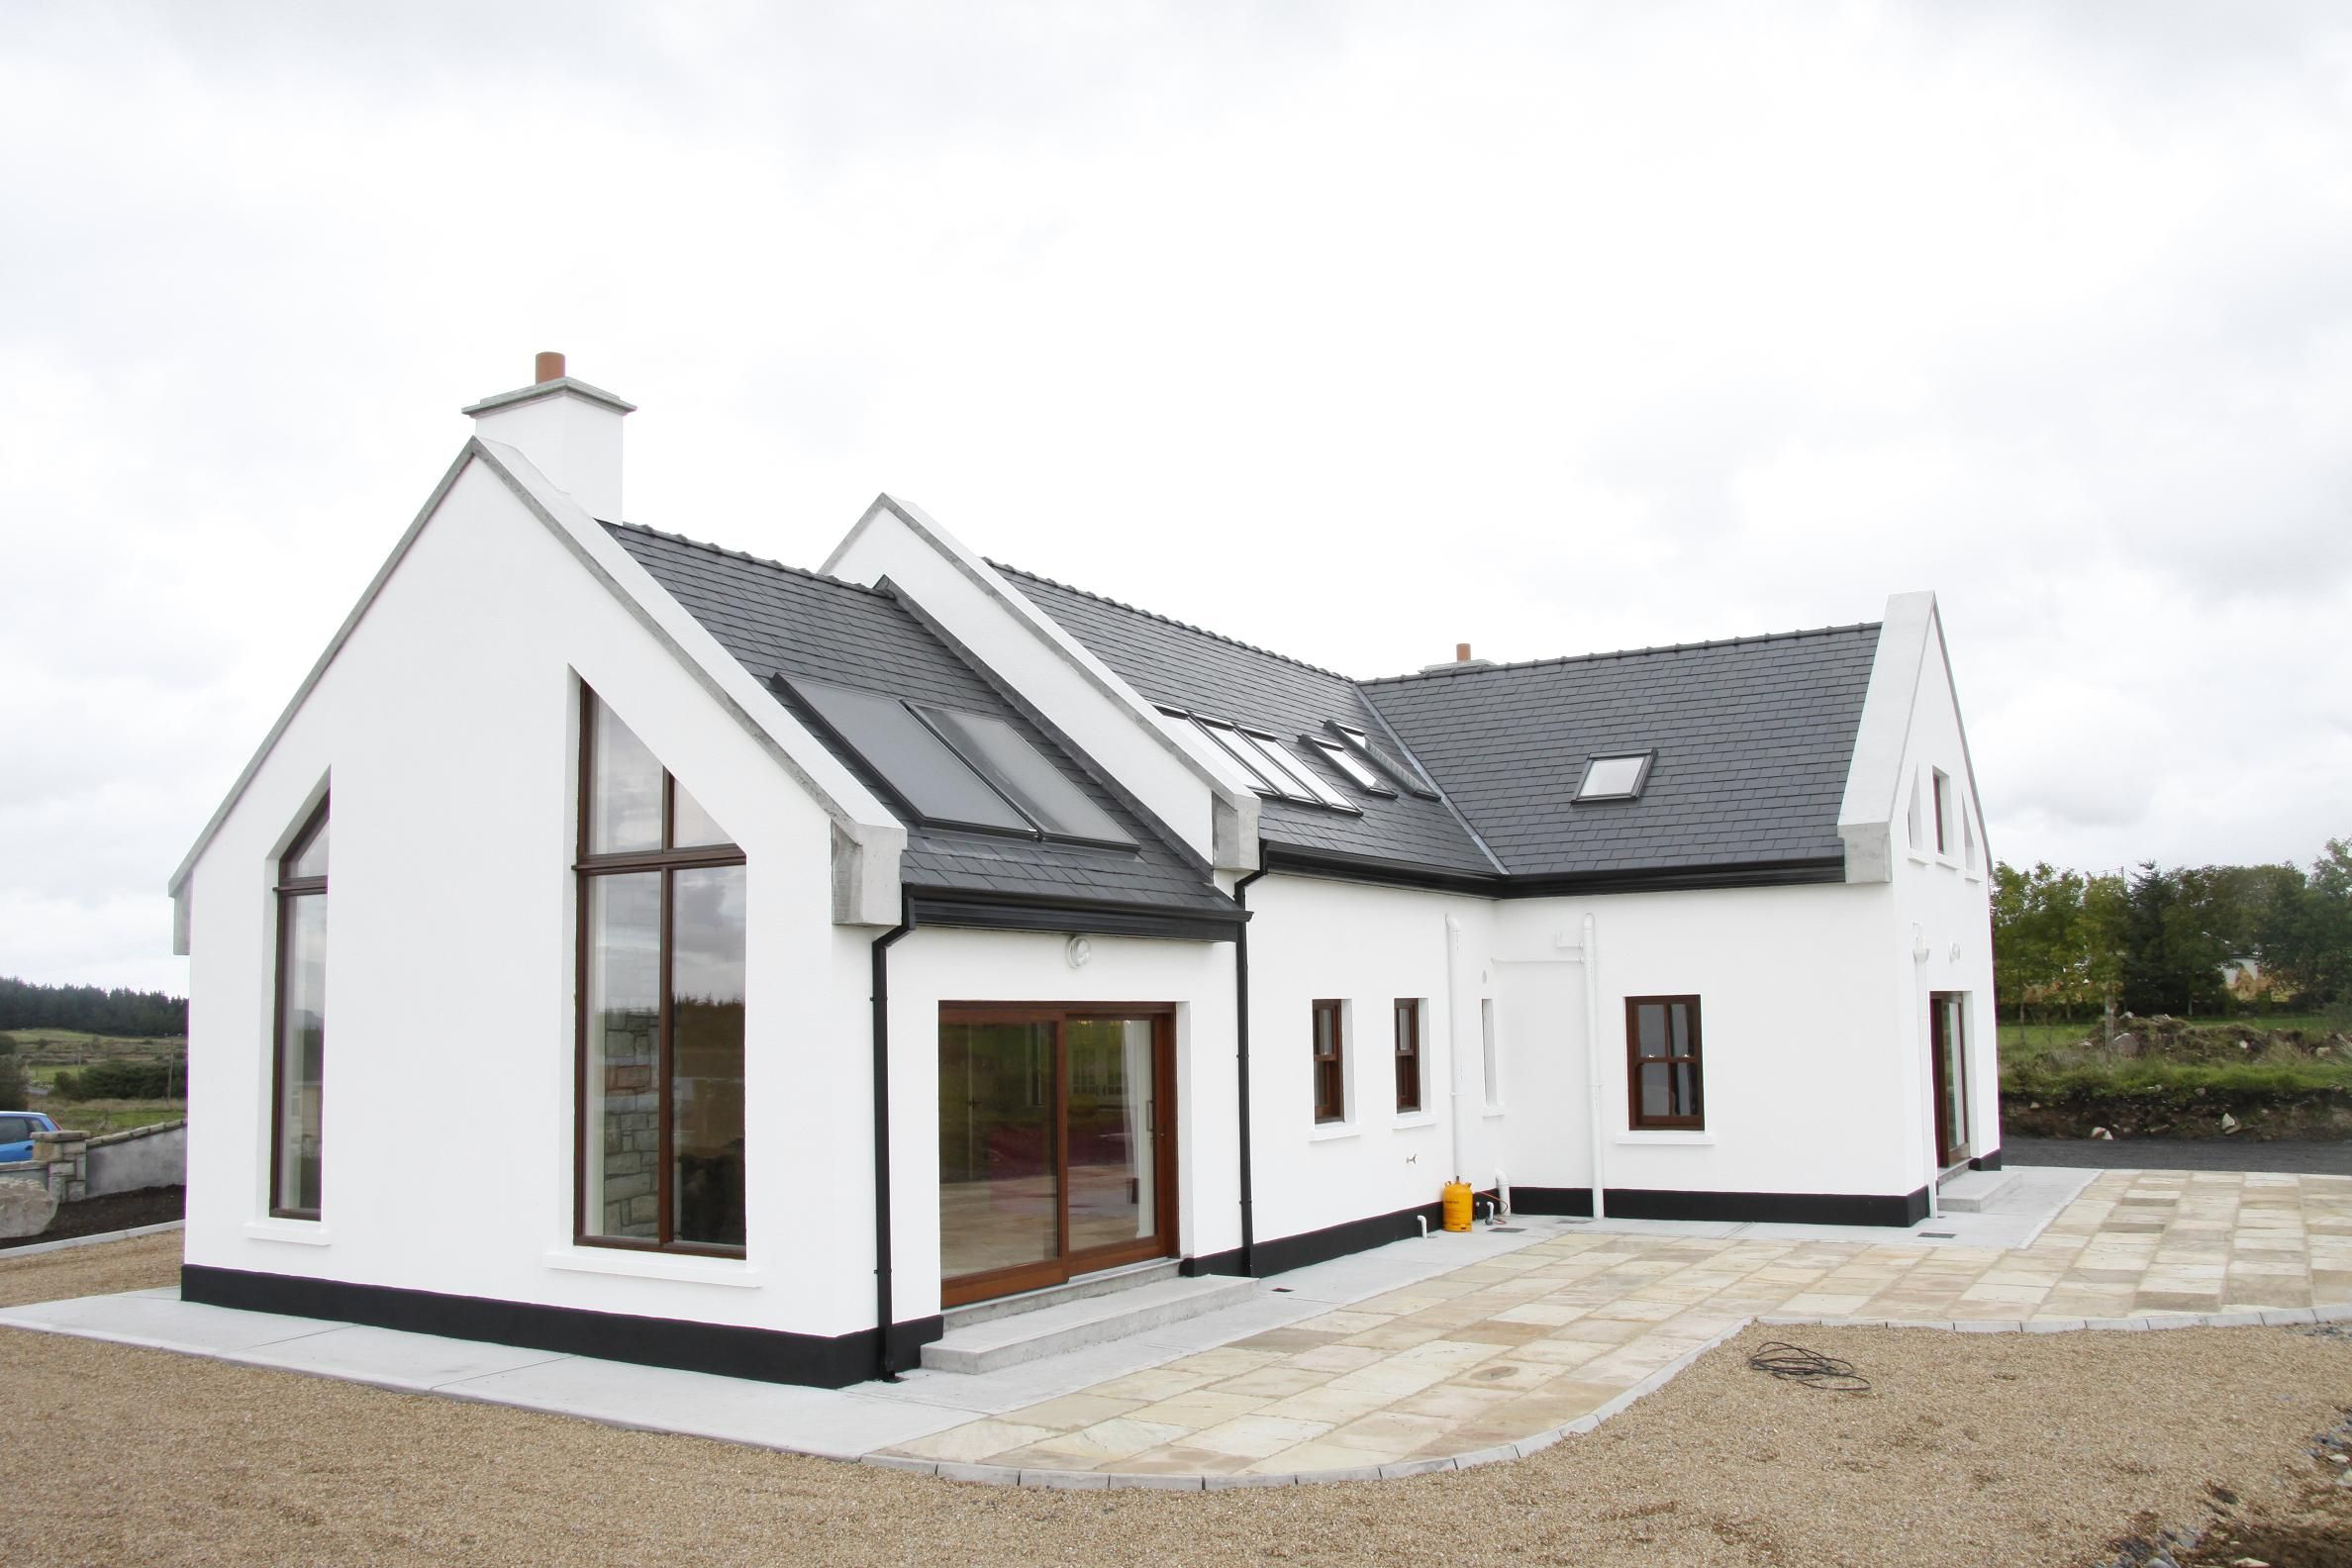 Exterior bungalow house ireland google search house for Modern bungalow designs and plans